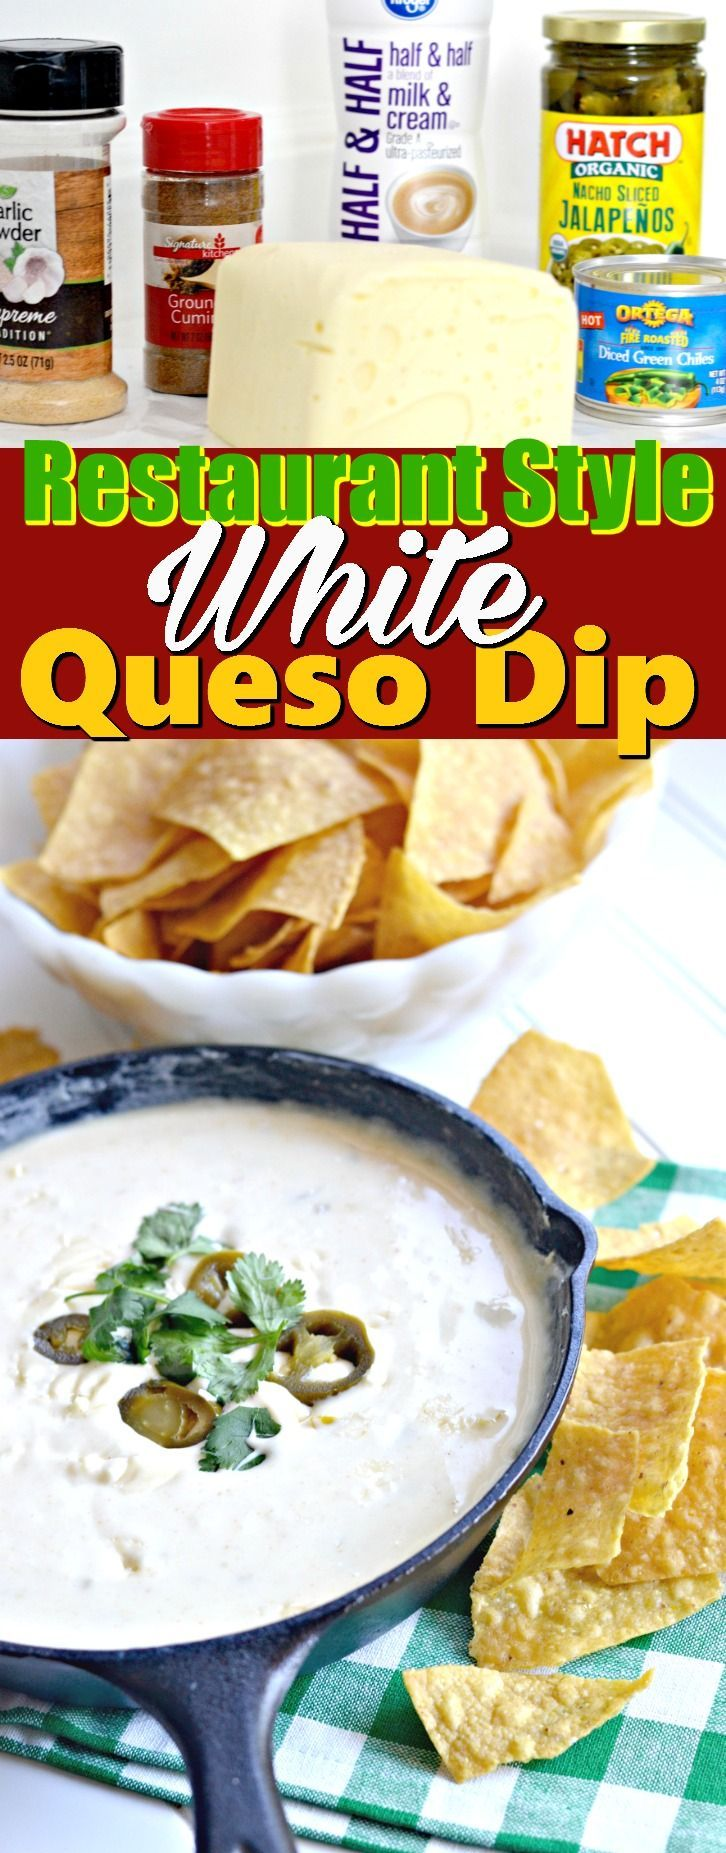 Restaurant Style White Queso Dip – Hip2Save